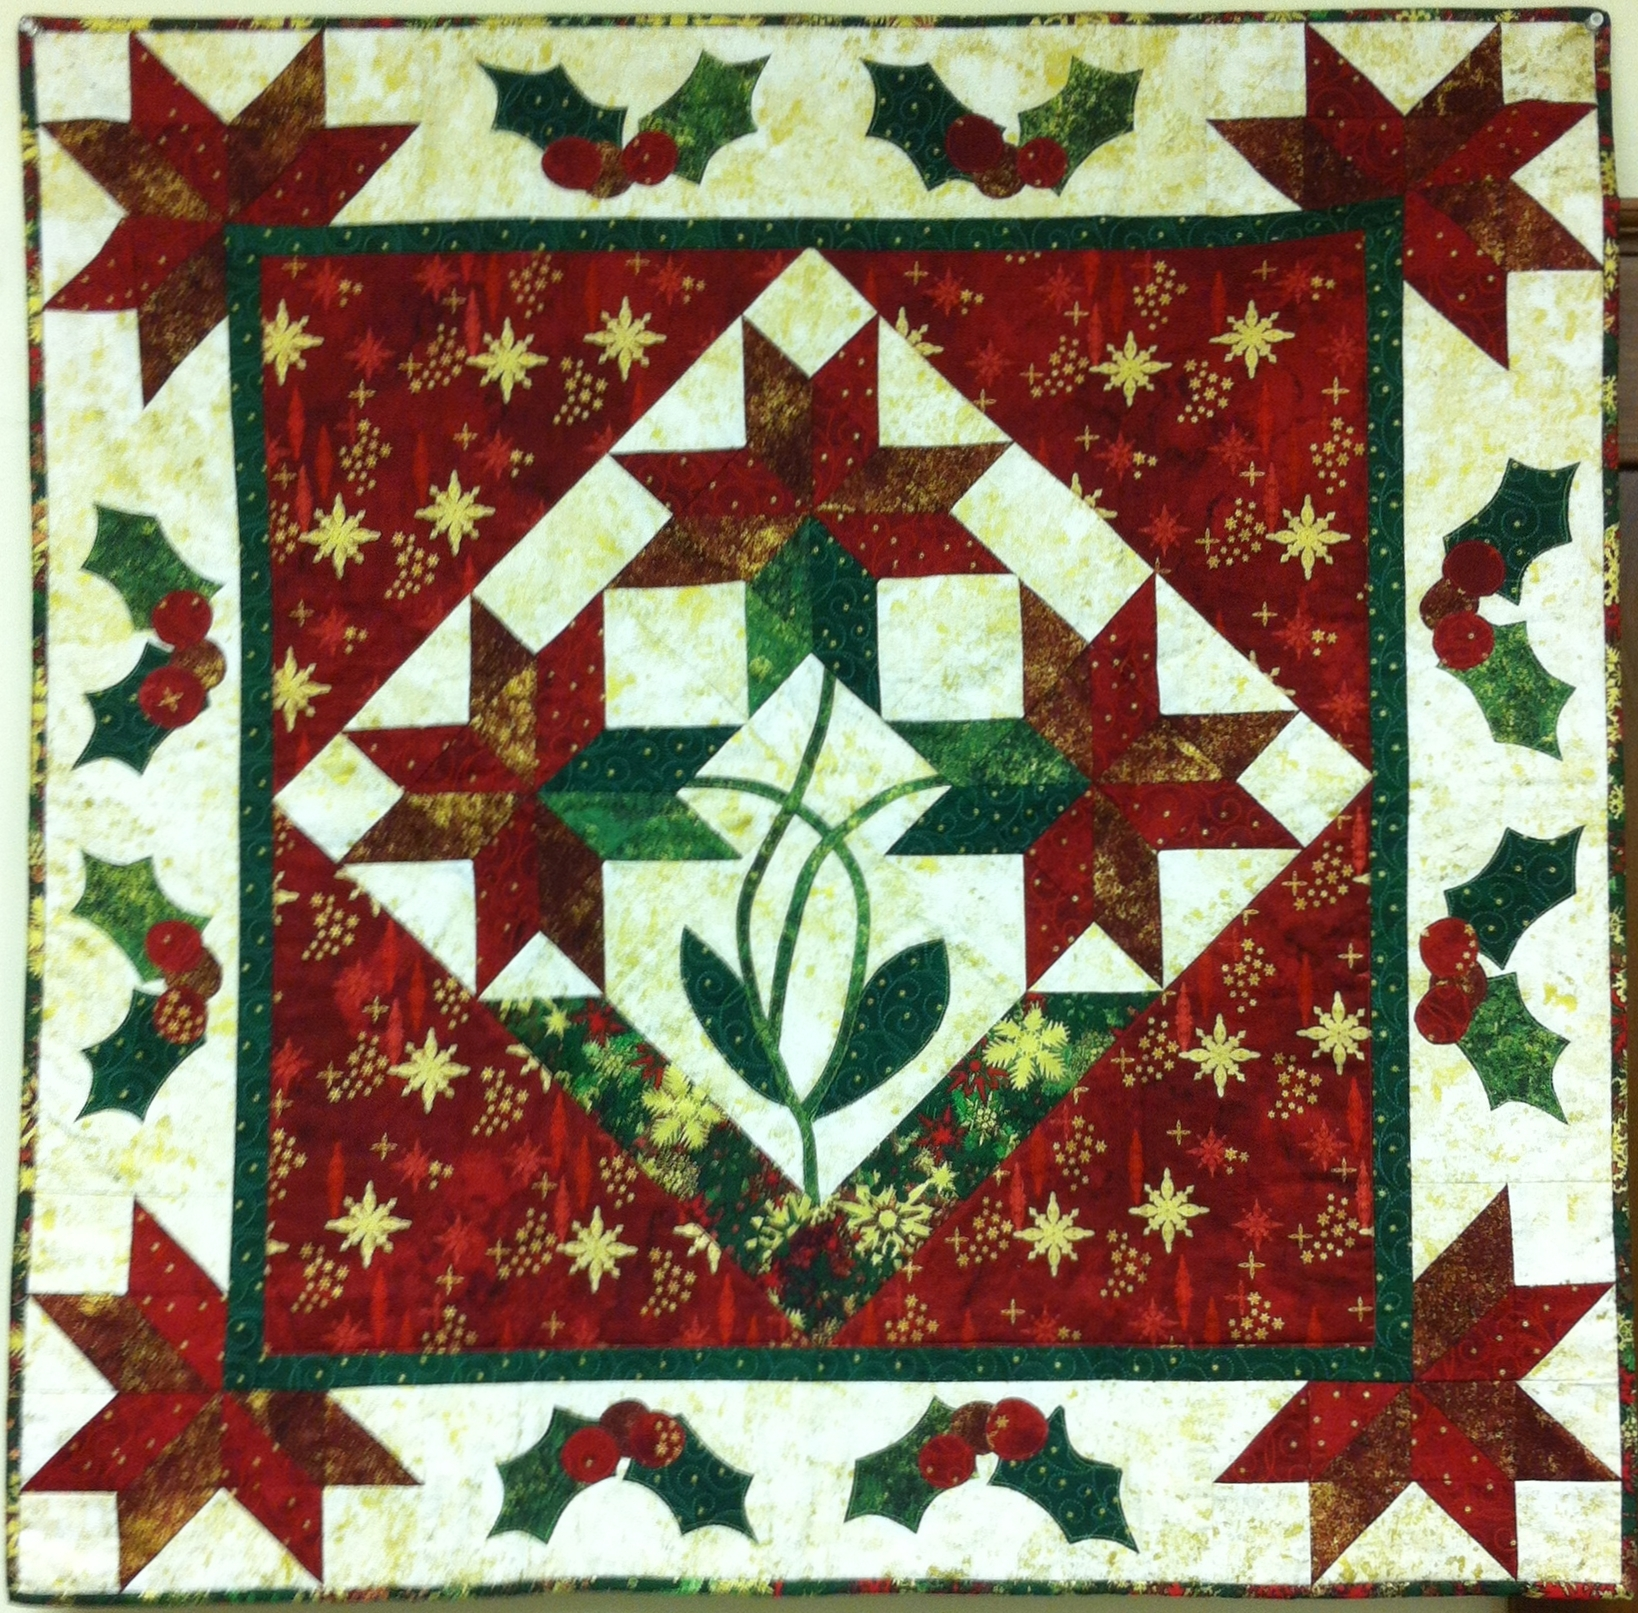 Poinsettia Wall Hanging Quilt